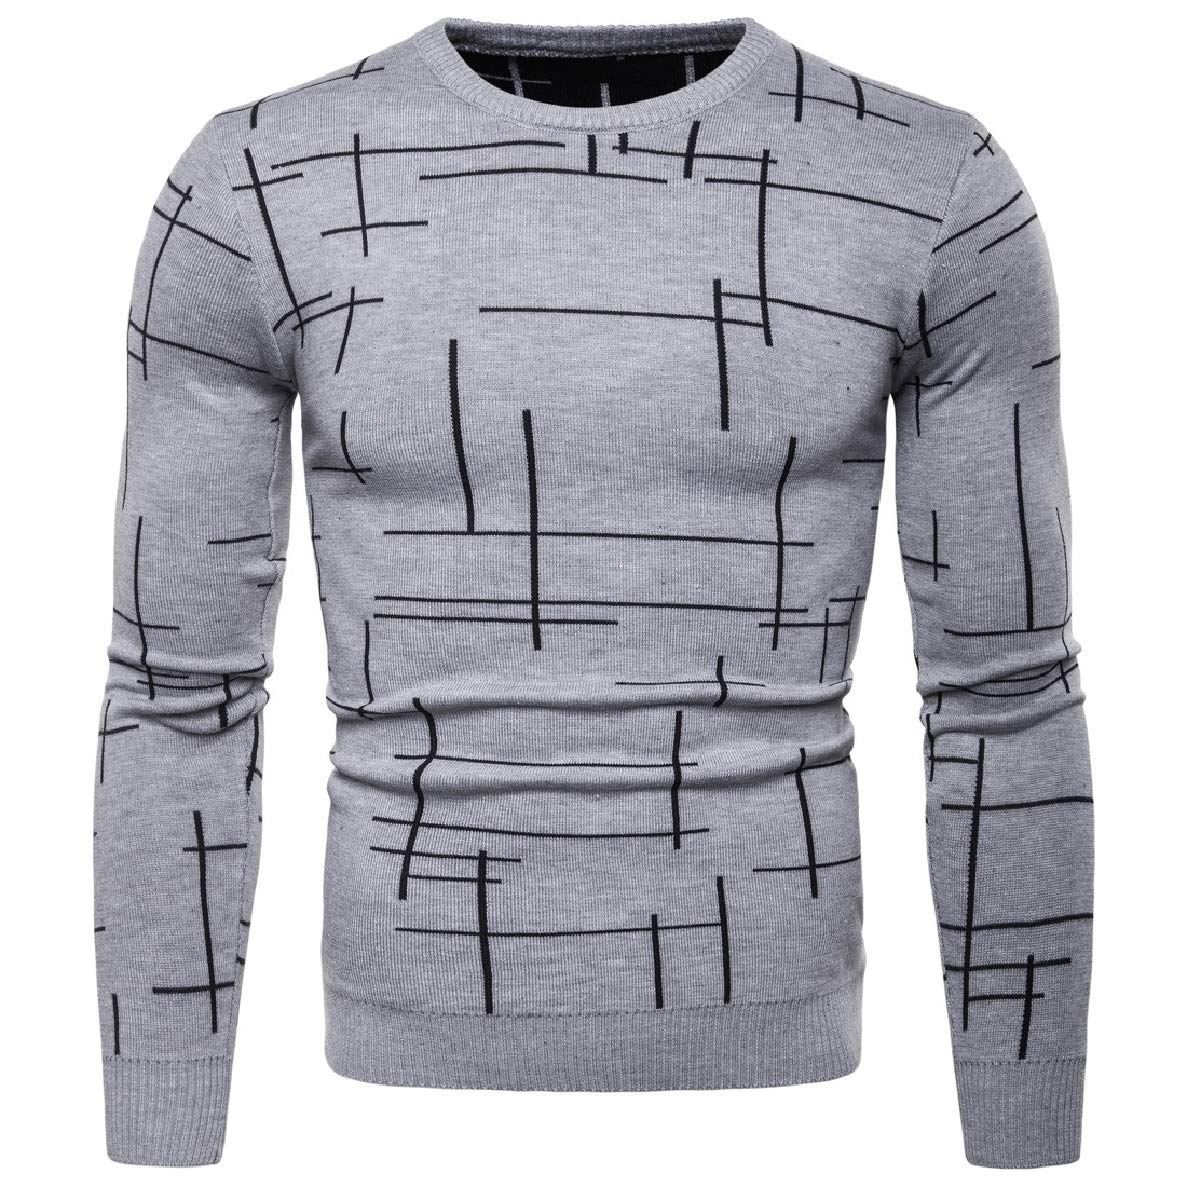 Winwinus Men Round Neck Printing Long Sleeve Knitted Sweater Pullover